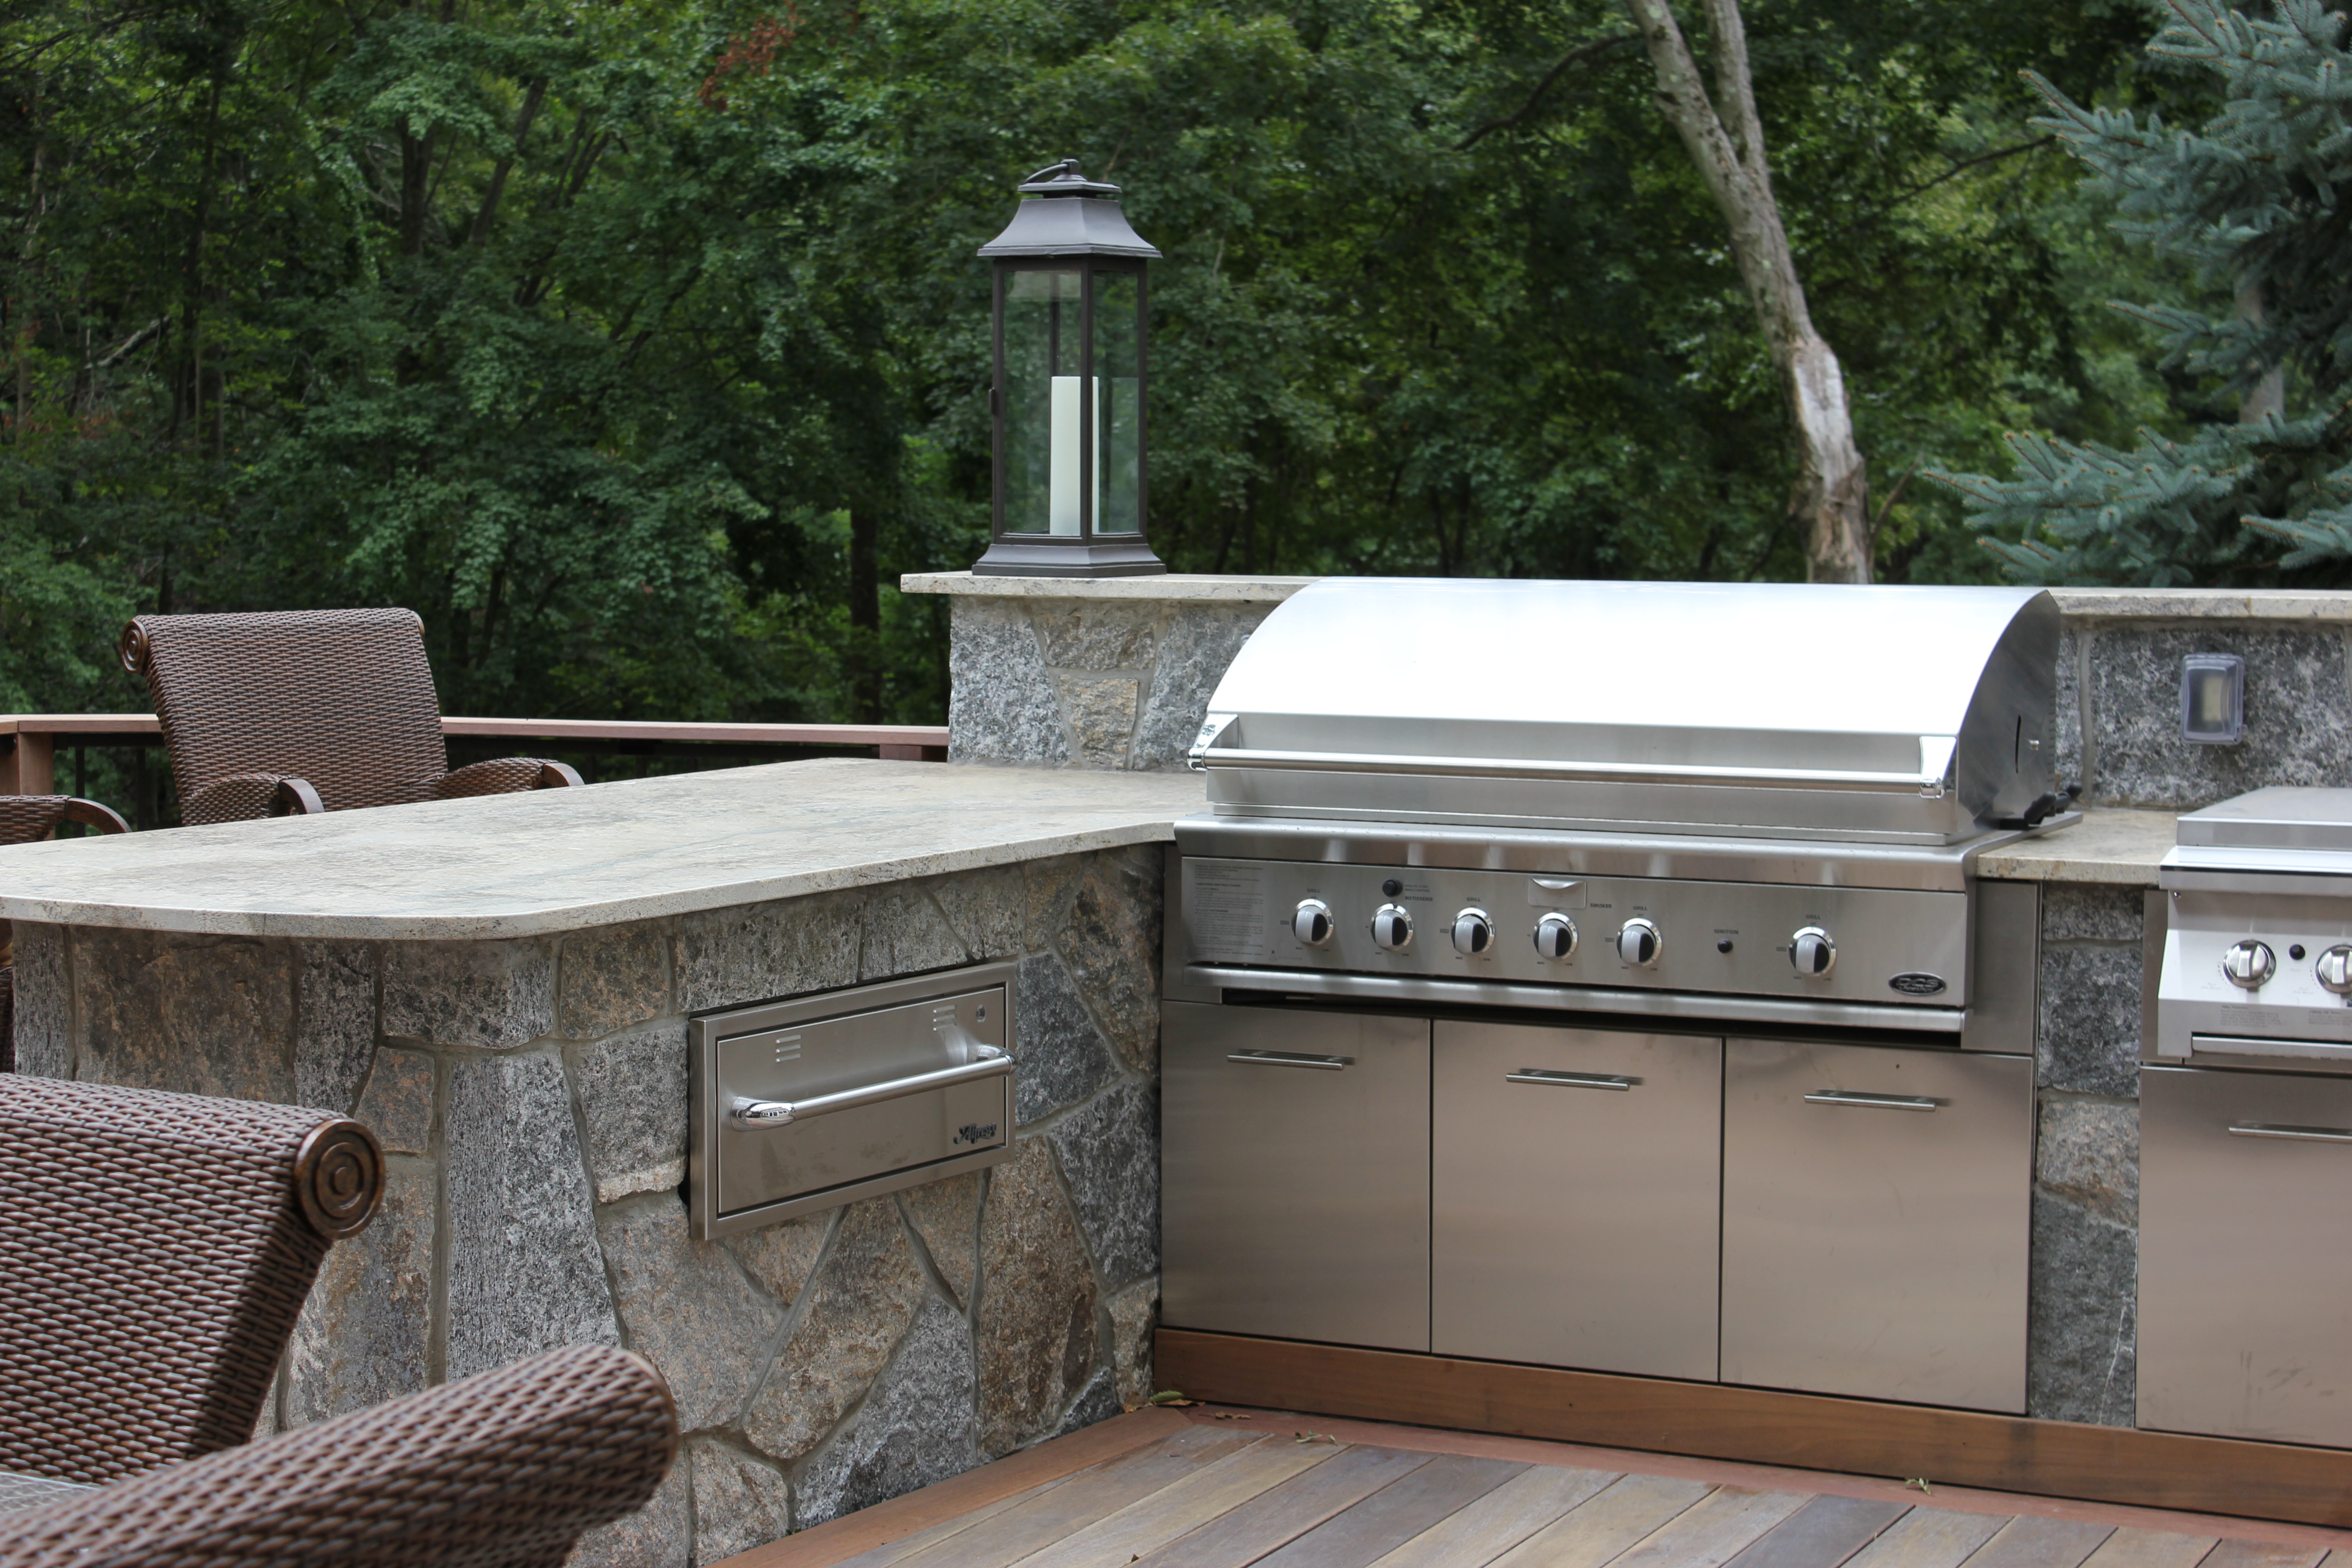 Outdoor Kitchen Designer Takes This Outdoor Kitchen And Outdoor Fireplace With Pizza Oven To The